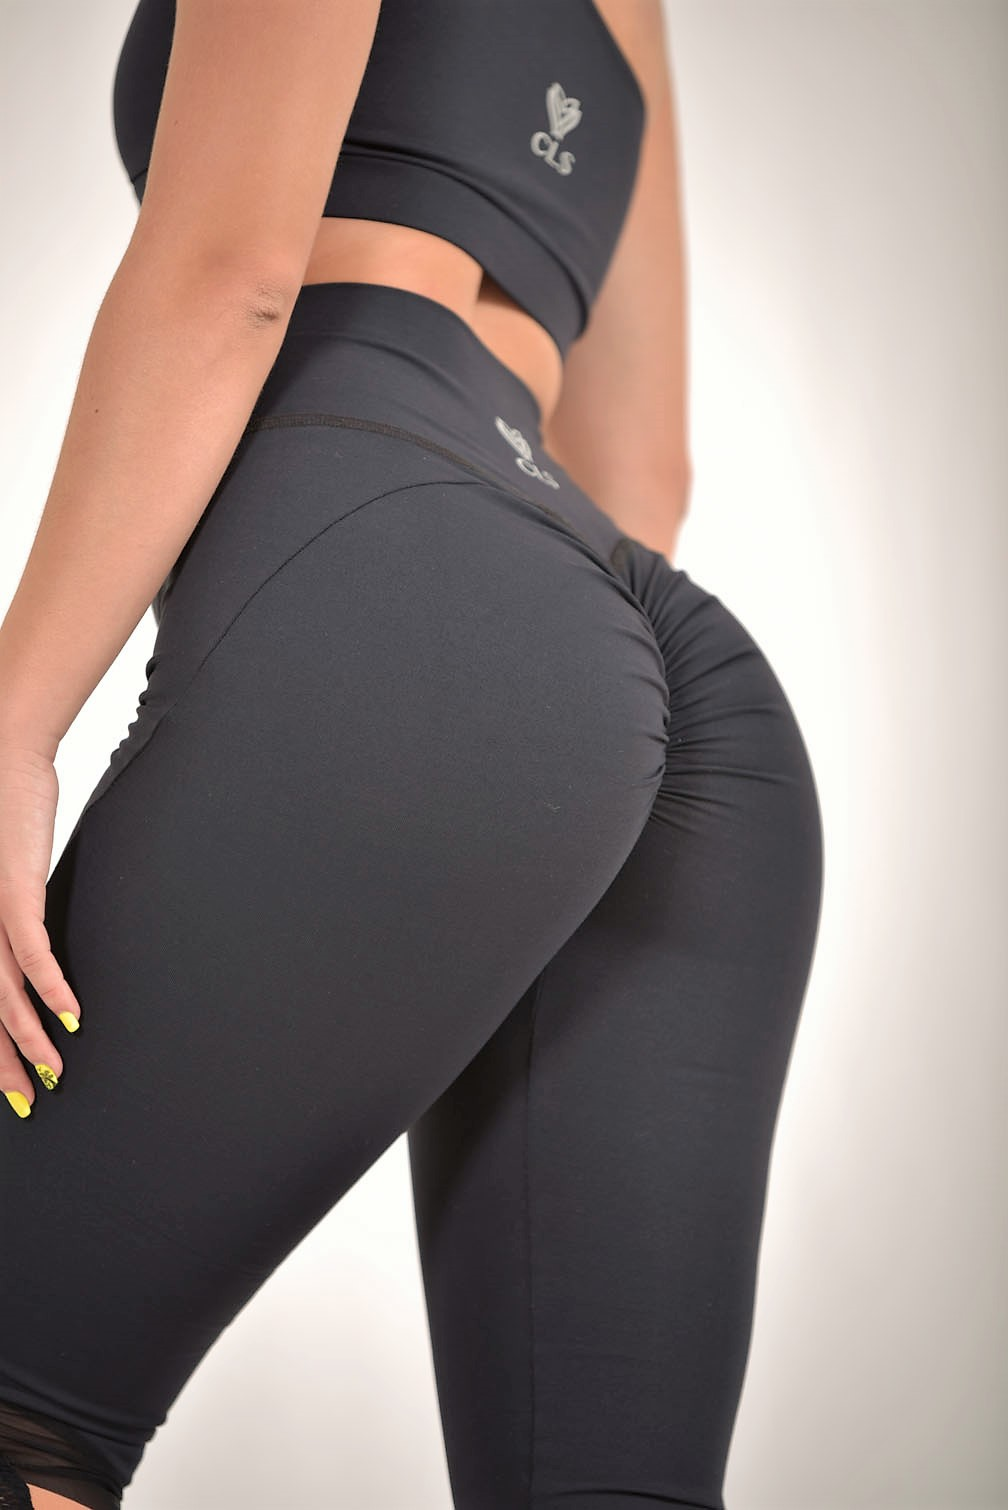 4c5a524053 CLS Sportswear - Leggings, Scrunch Butt, Yoga Pants, Tights